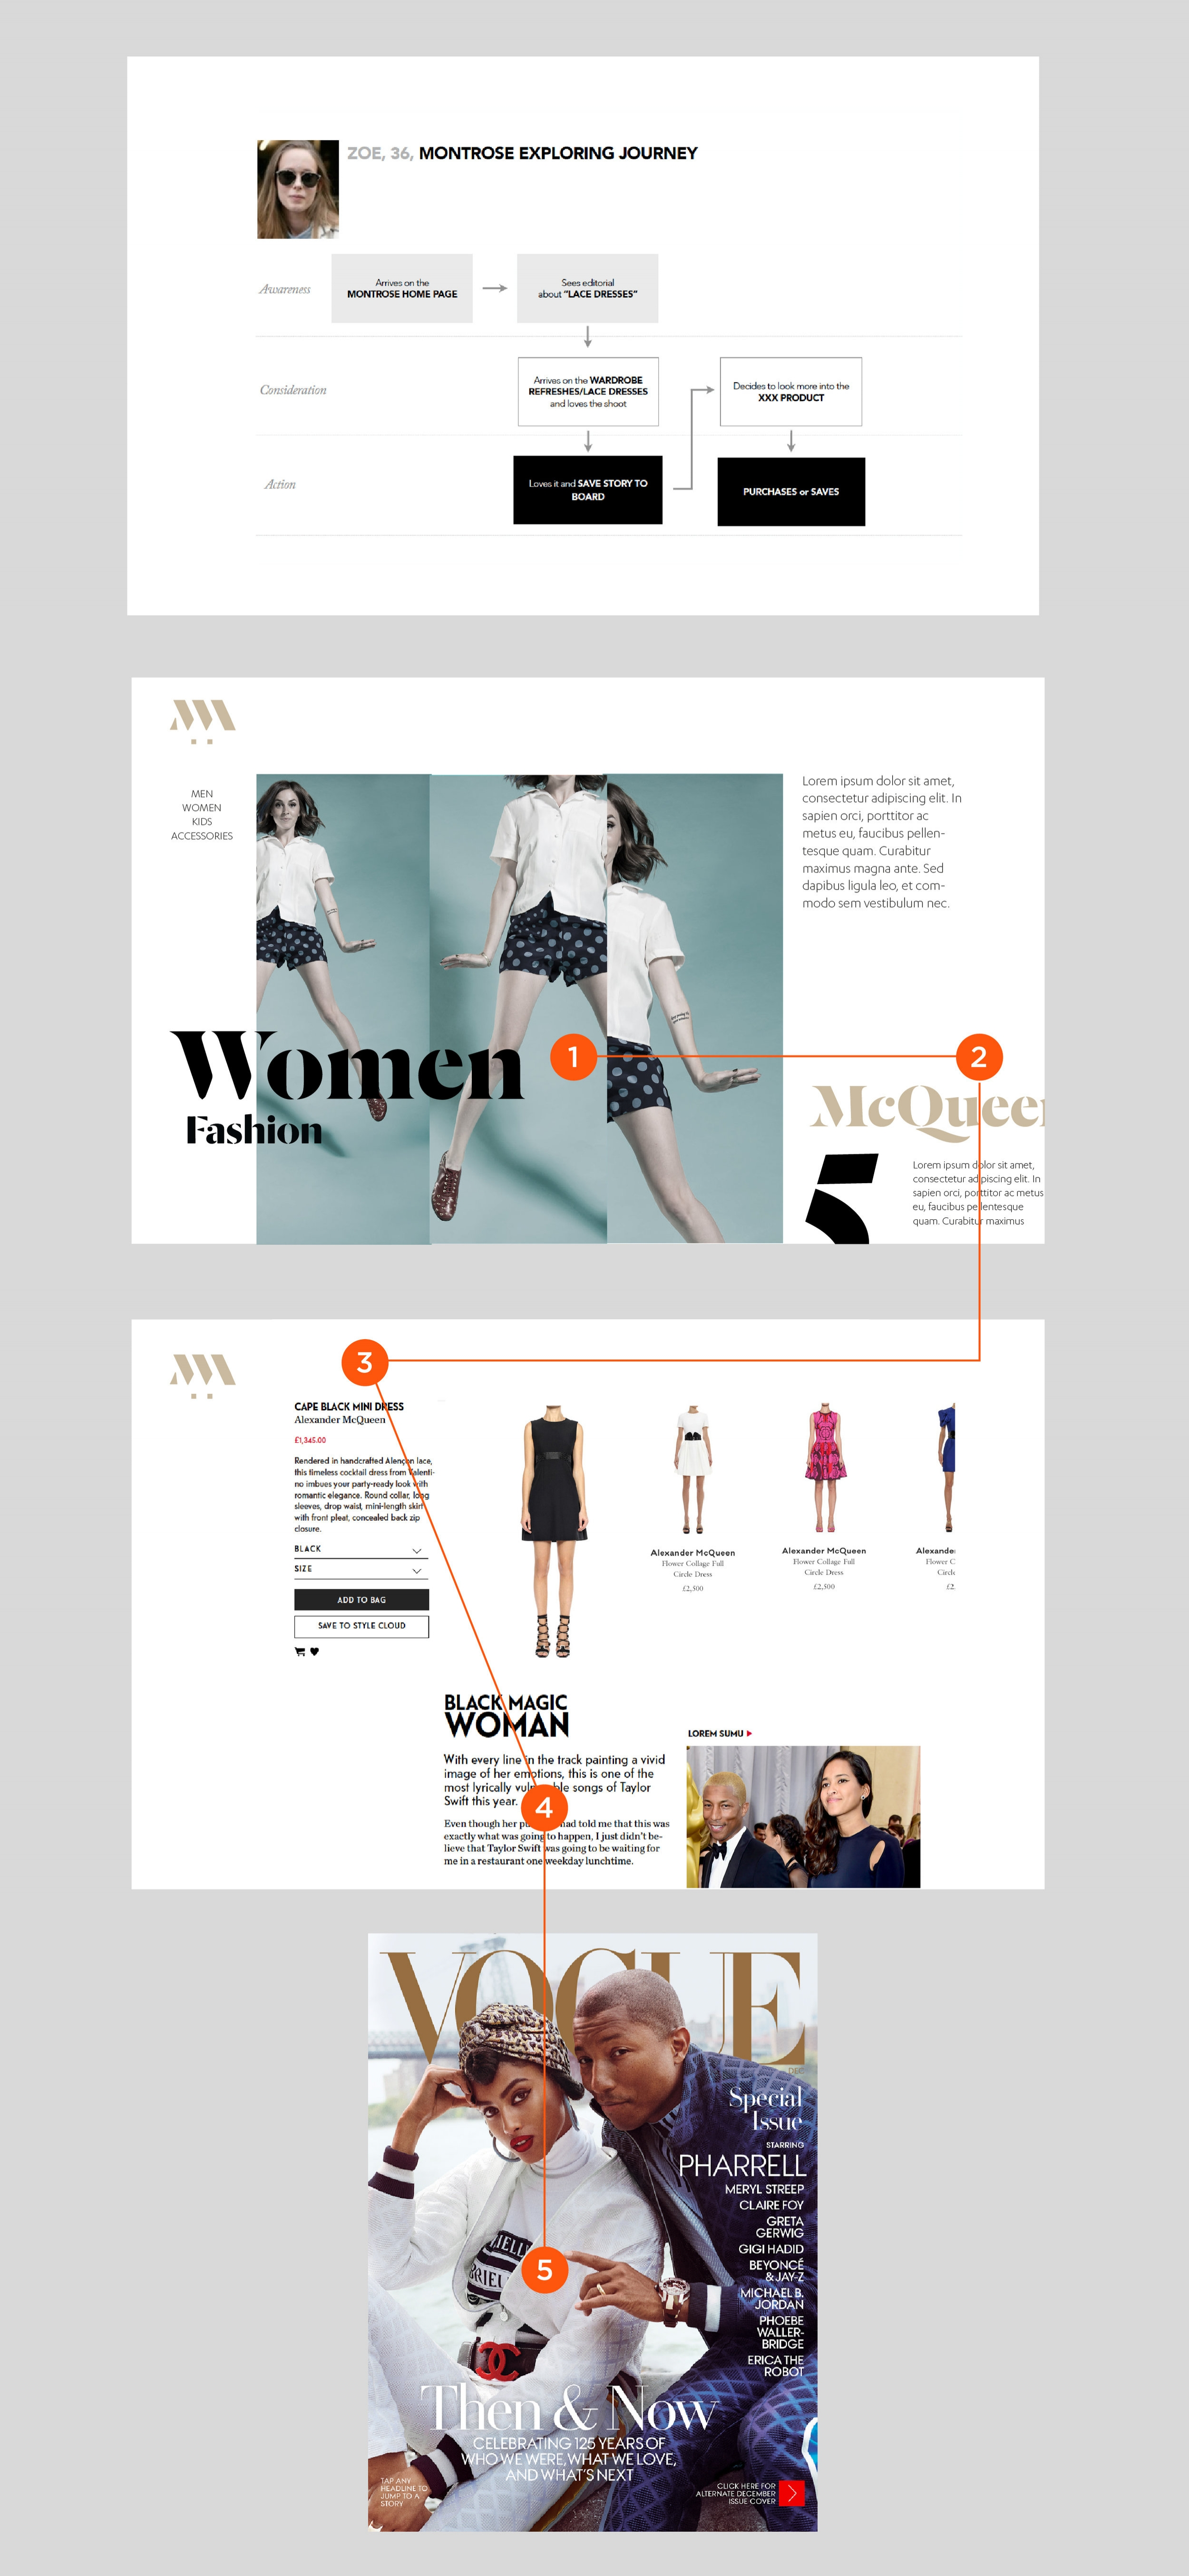 Platform to Mag user flow : From site visit (1), shopping (3)and to Magazine (5) via targeted content (4).